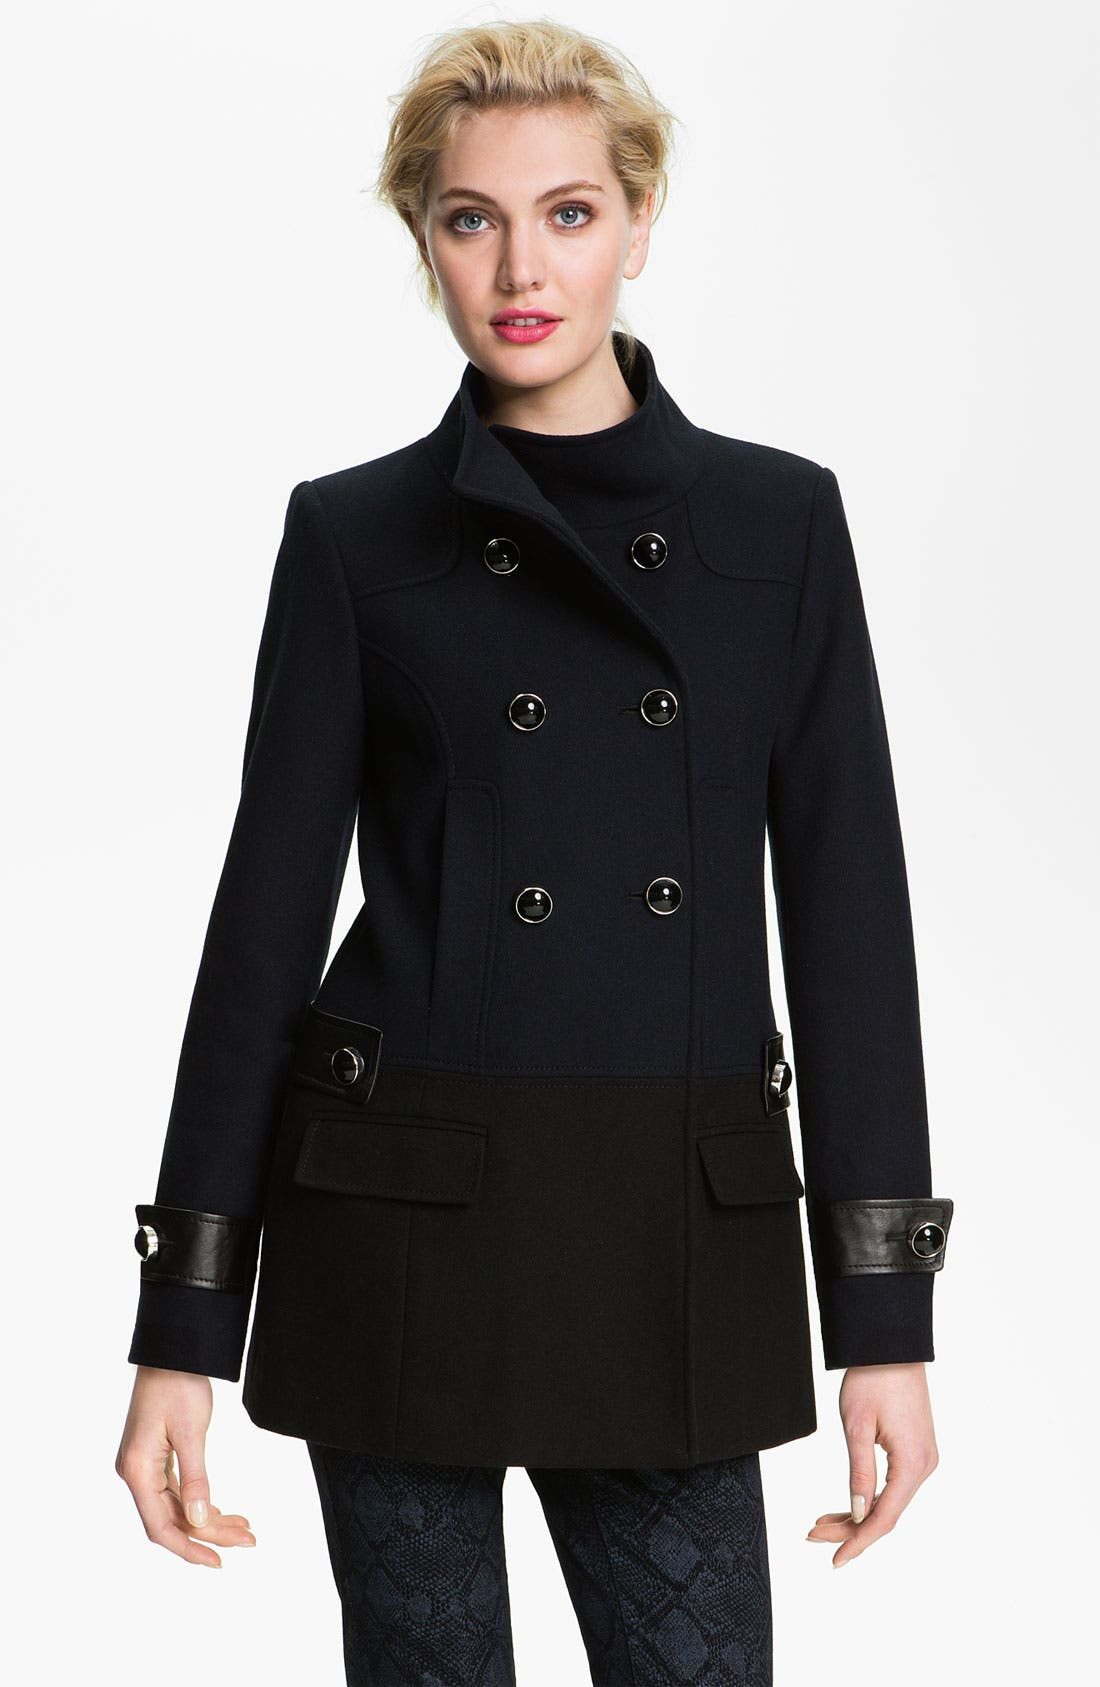 Alternate Image 1 Selected - Vince Camuto Colorblock Peacoat